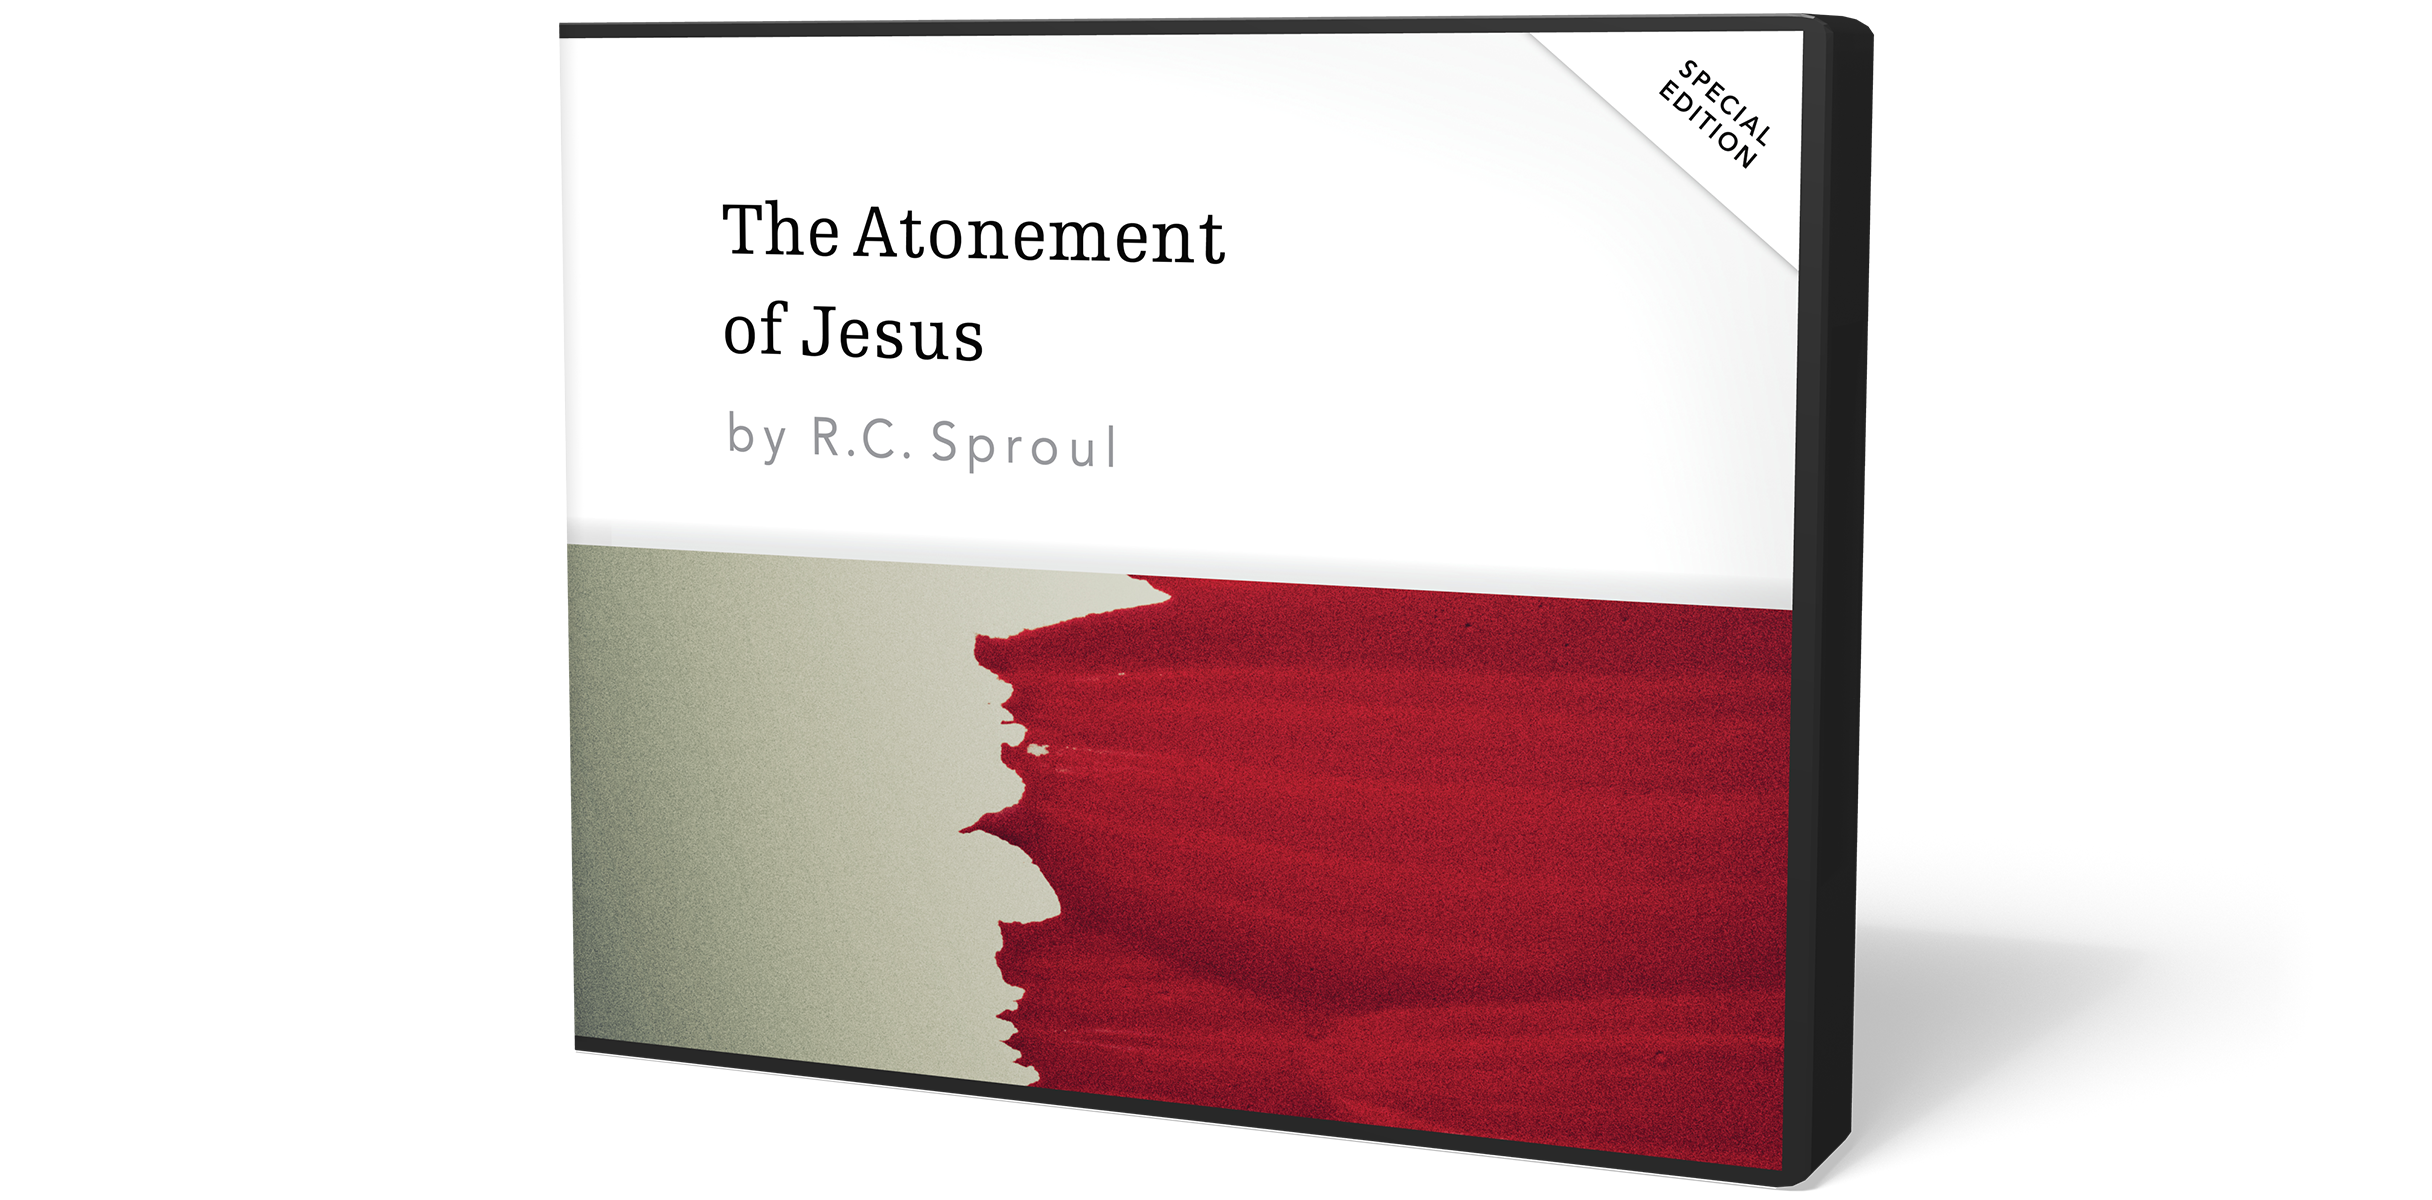 Special Edition The Atonement of Jesus